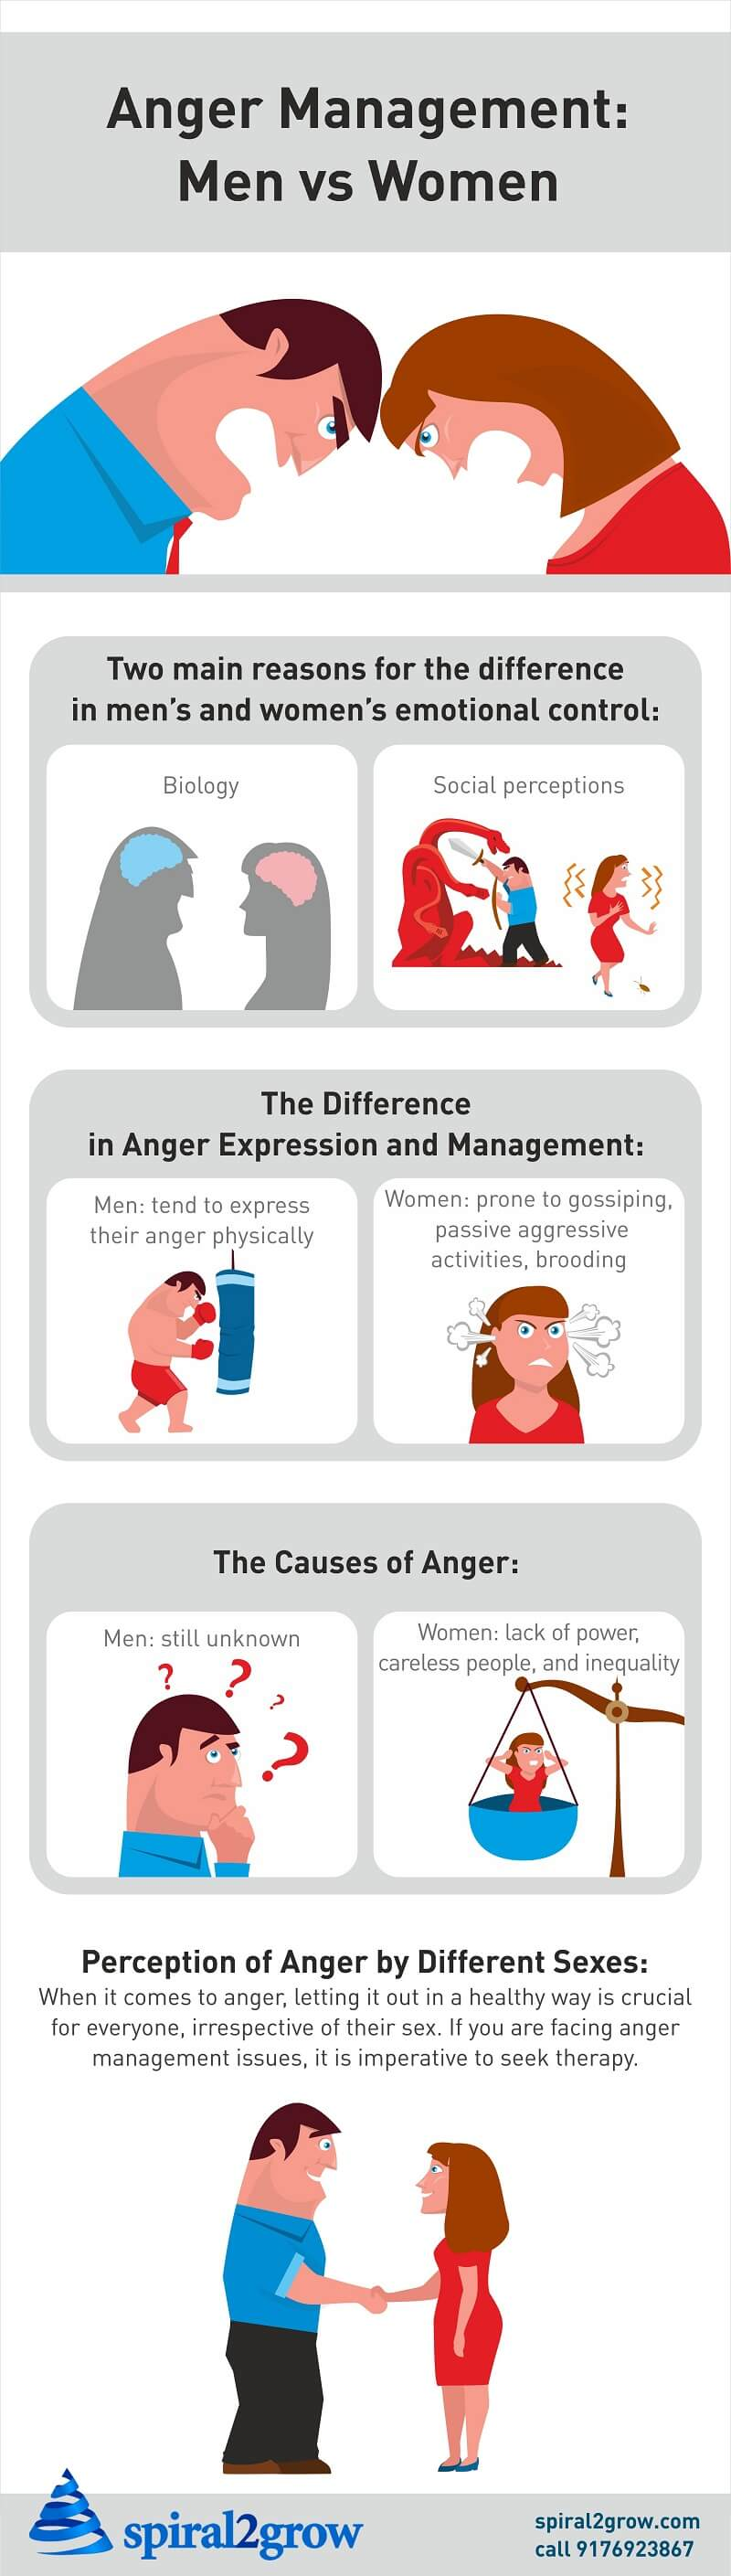 Anger Management: Men Vs Women